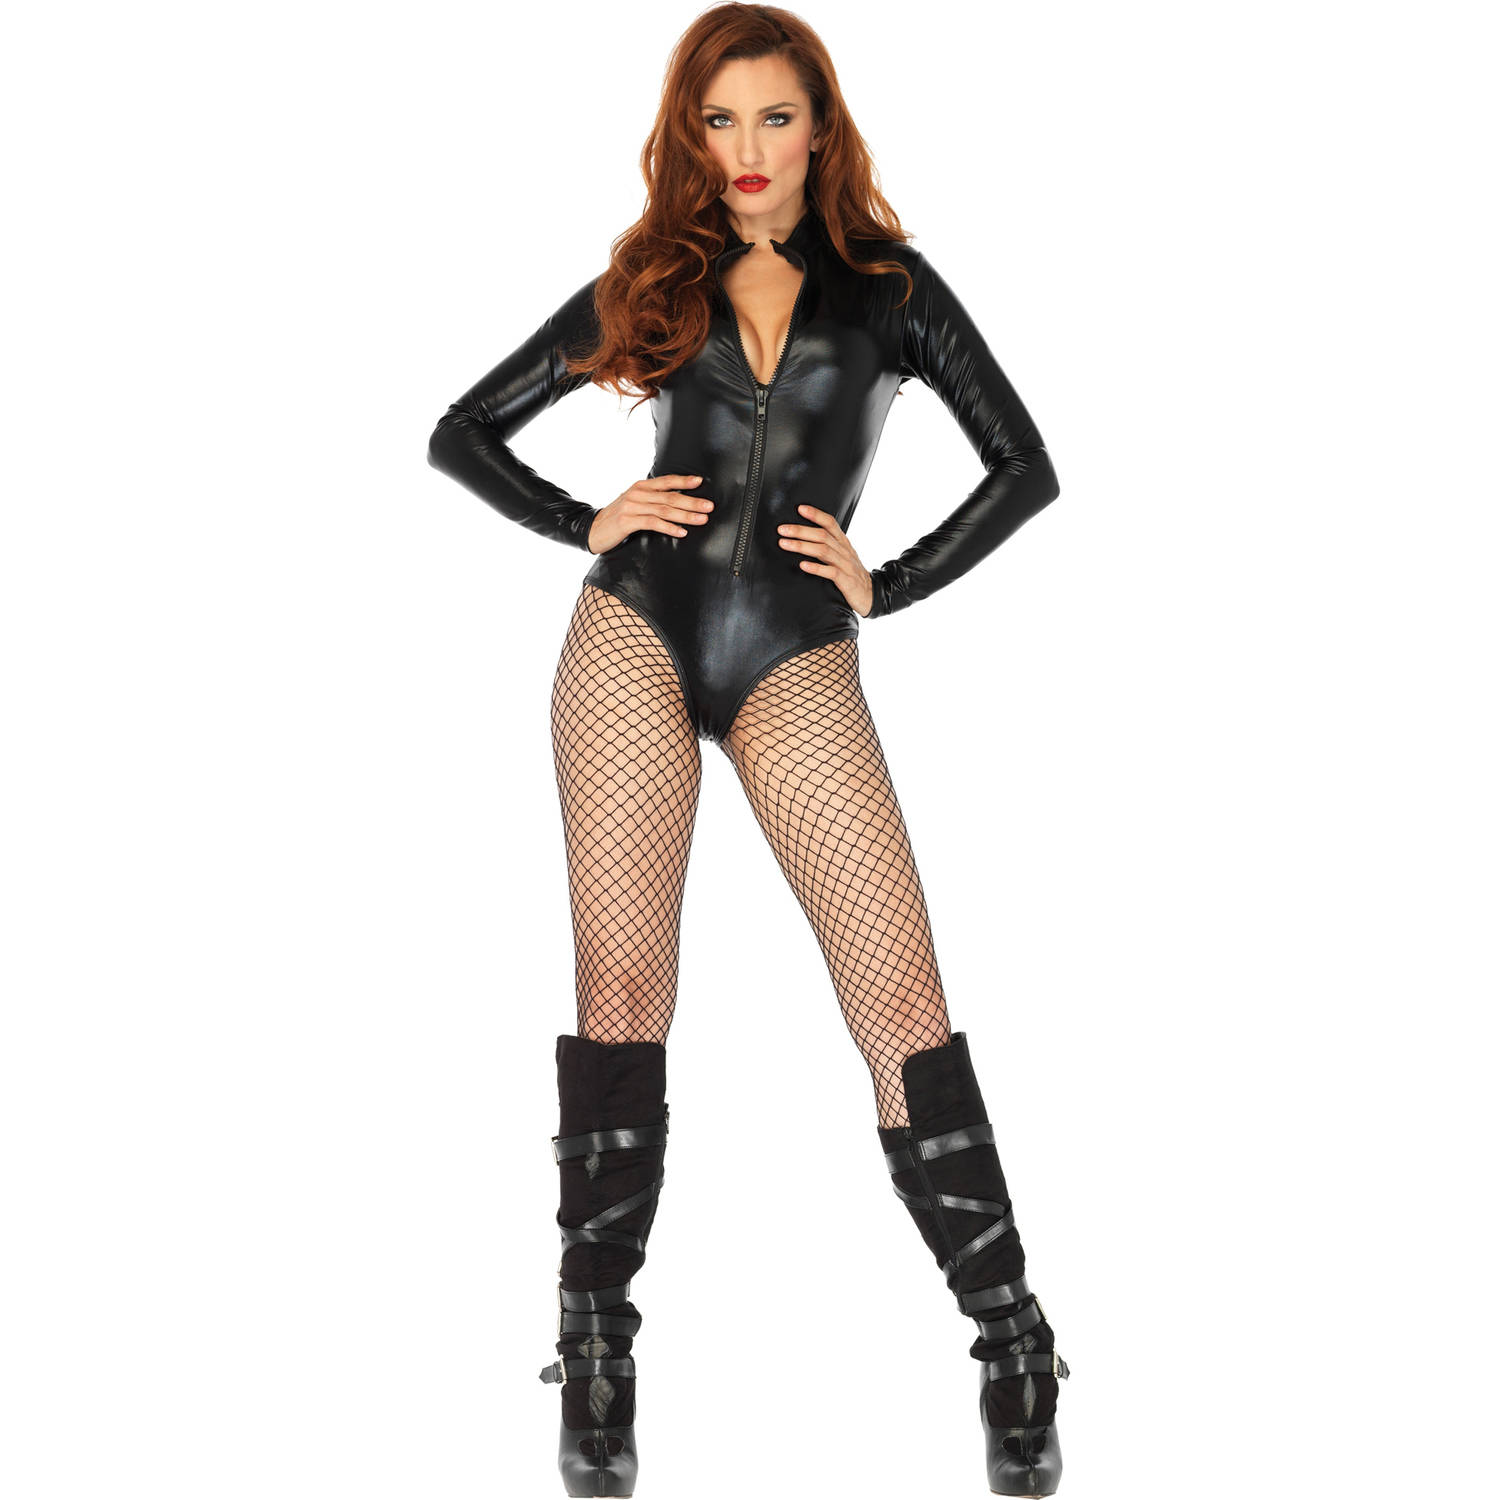 Leg Avenue Womens Black Bodysuit